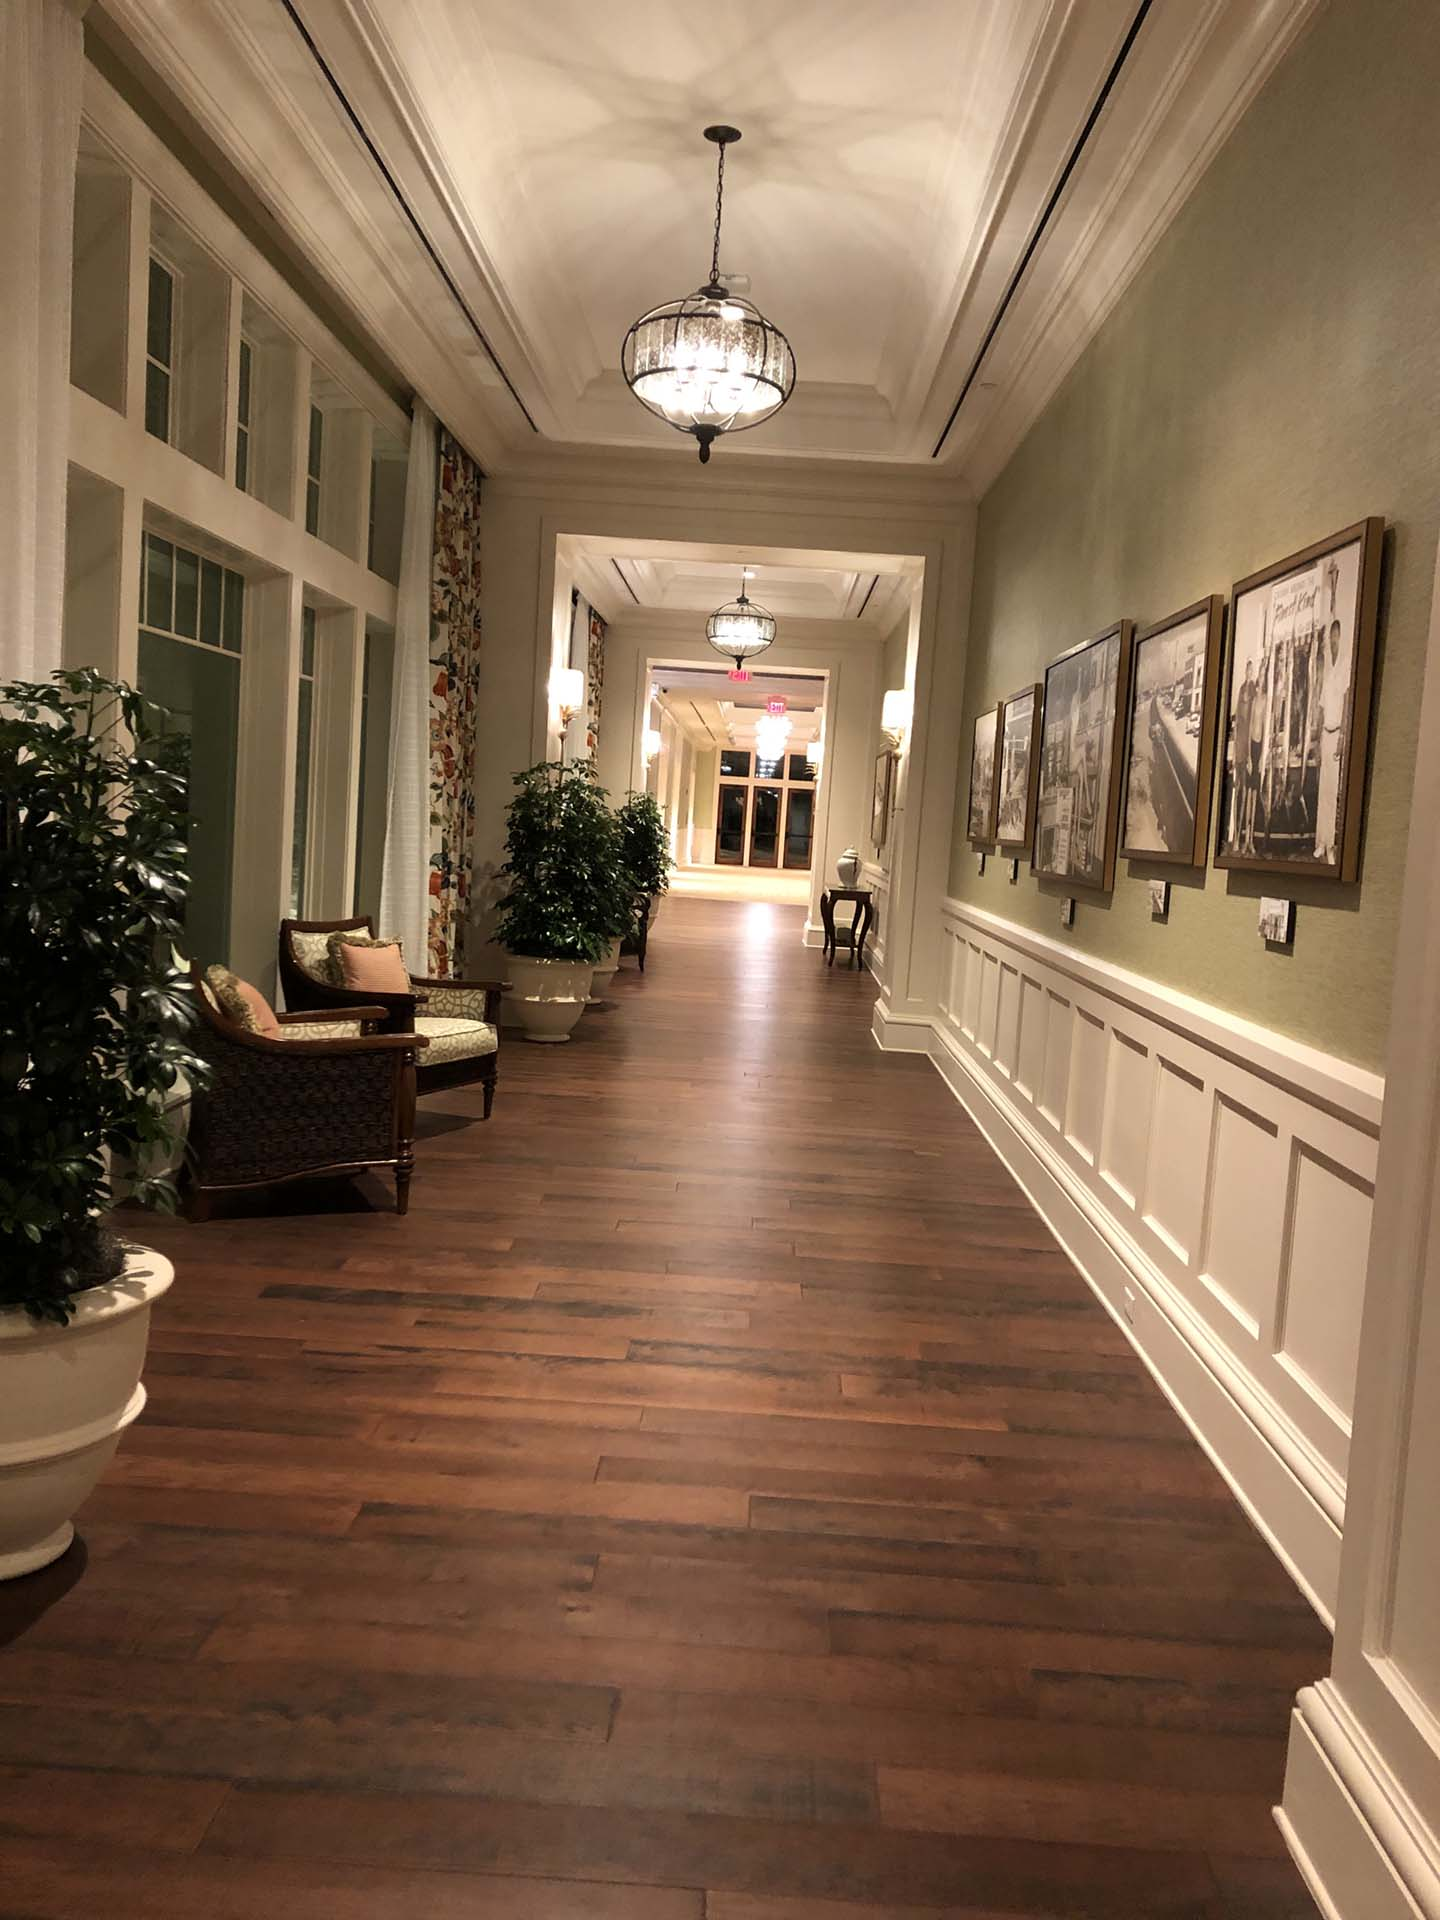 Wedding venue hallway